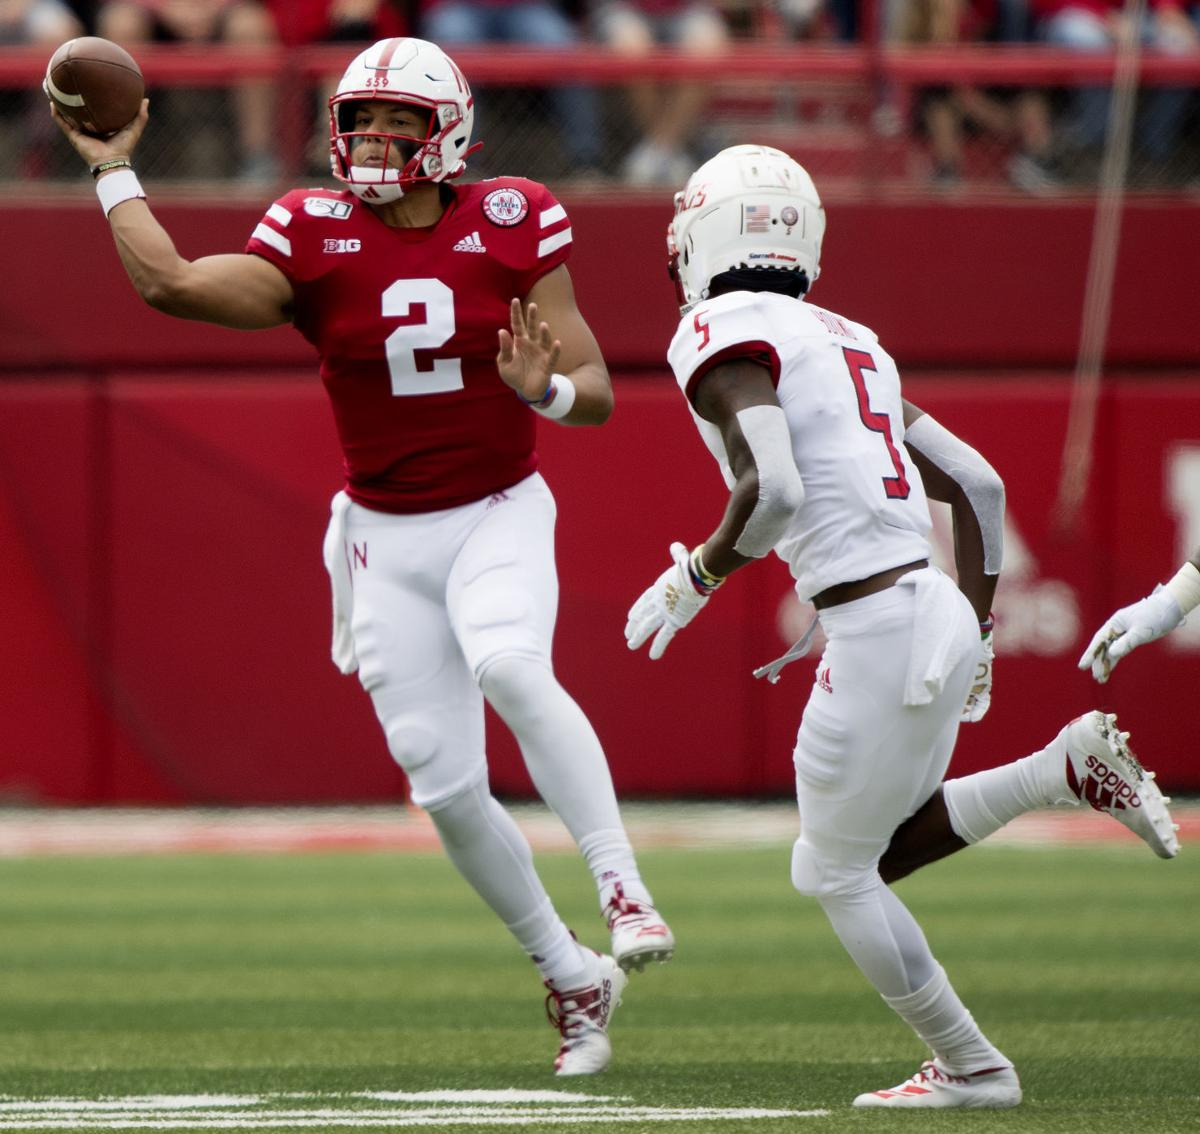 Nebraska vs. South Alabama, 8.31